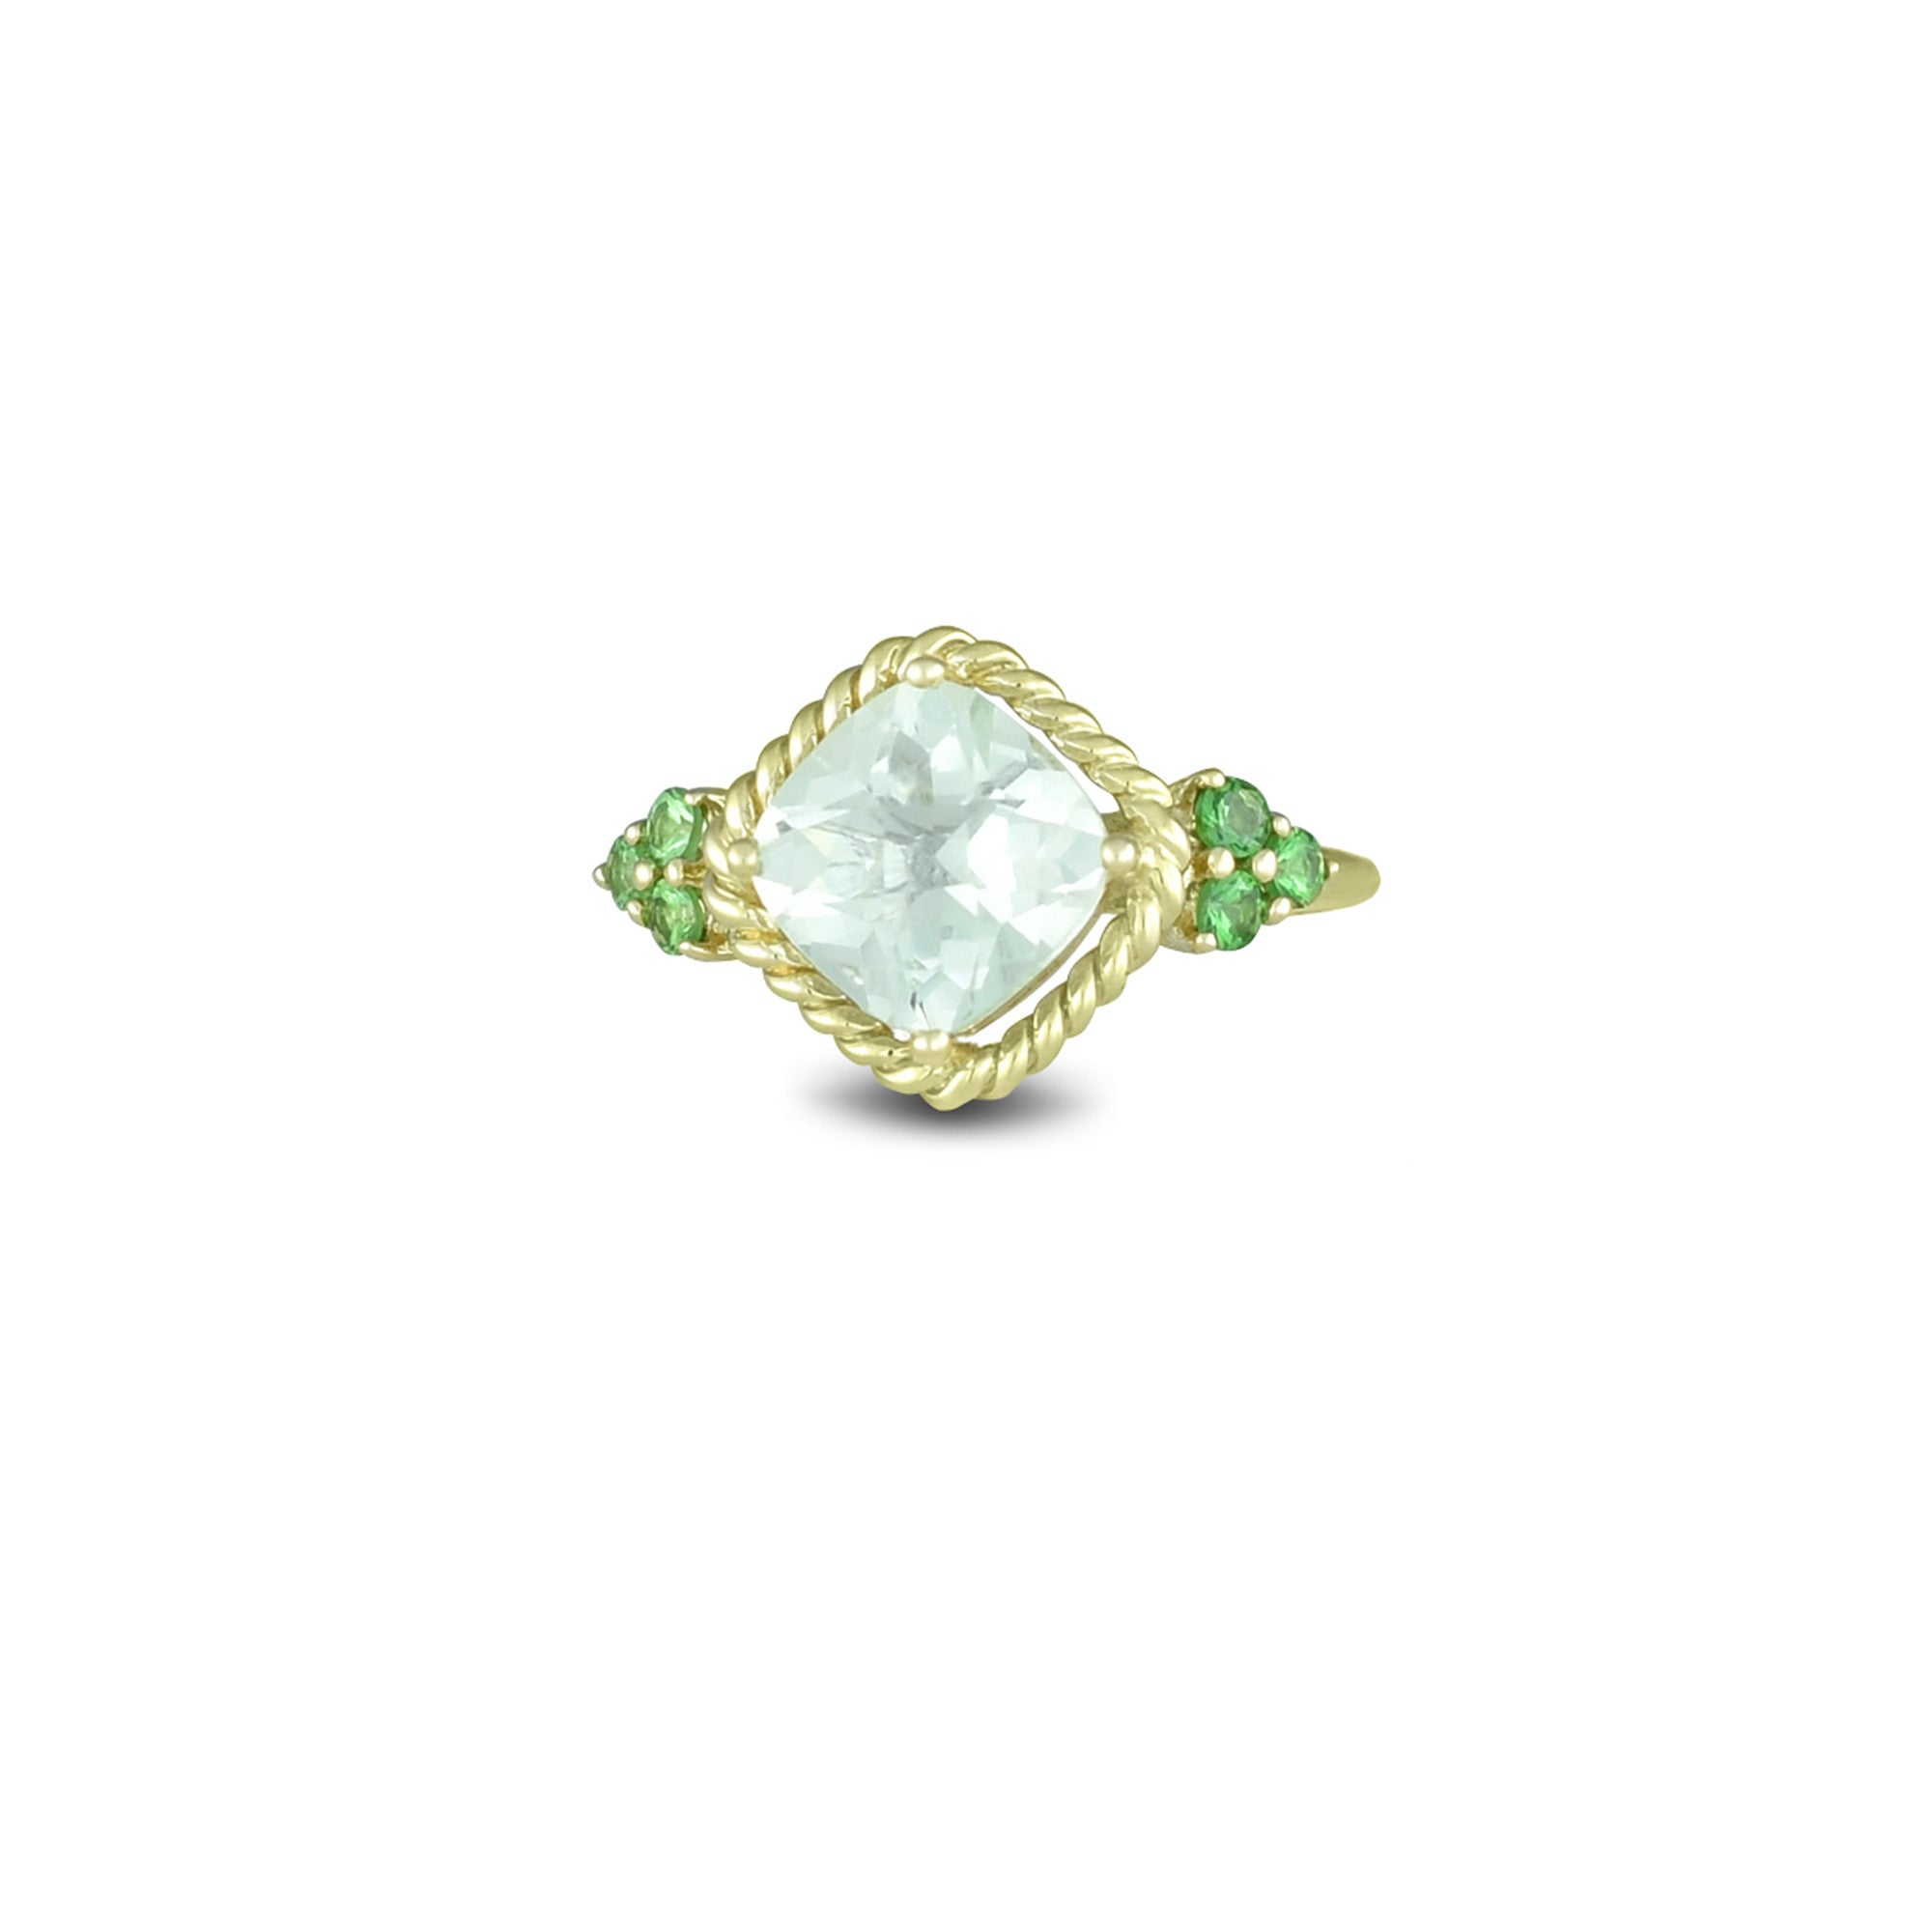 jewelry engagement details heffern rings elleard tsavorite view